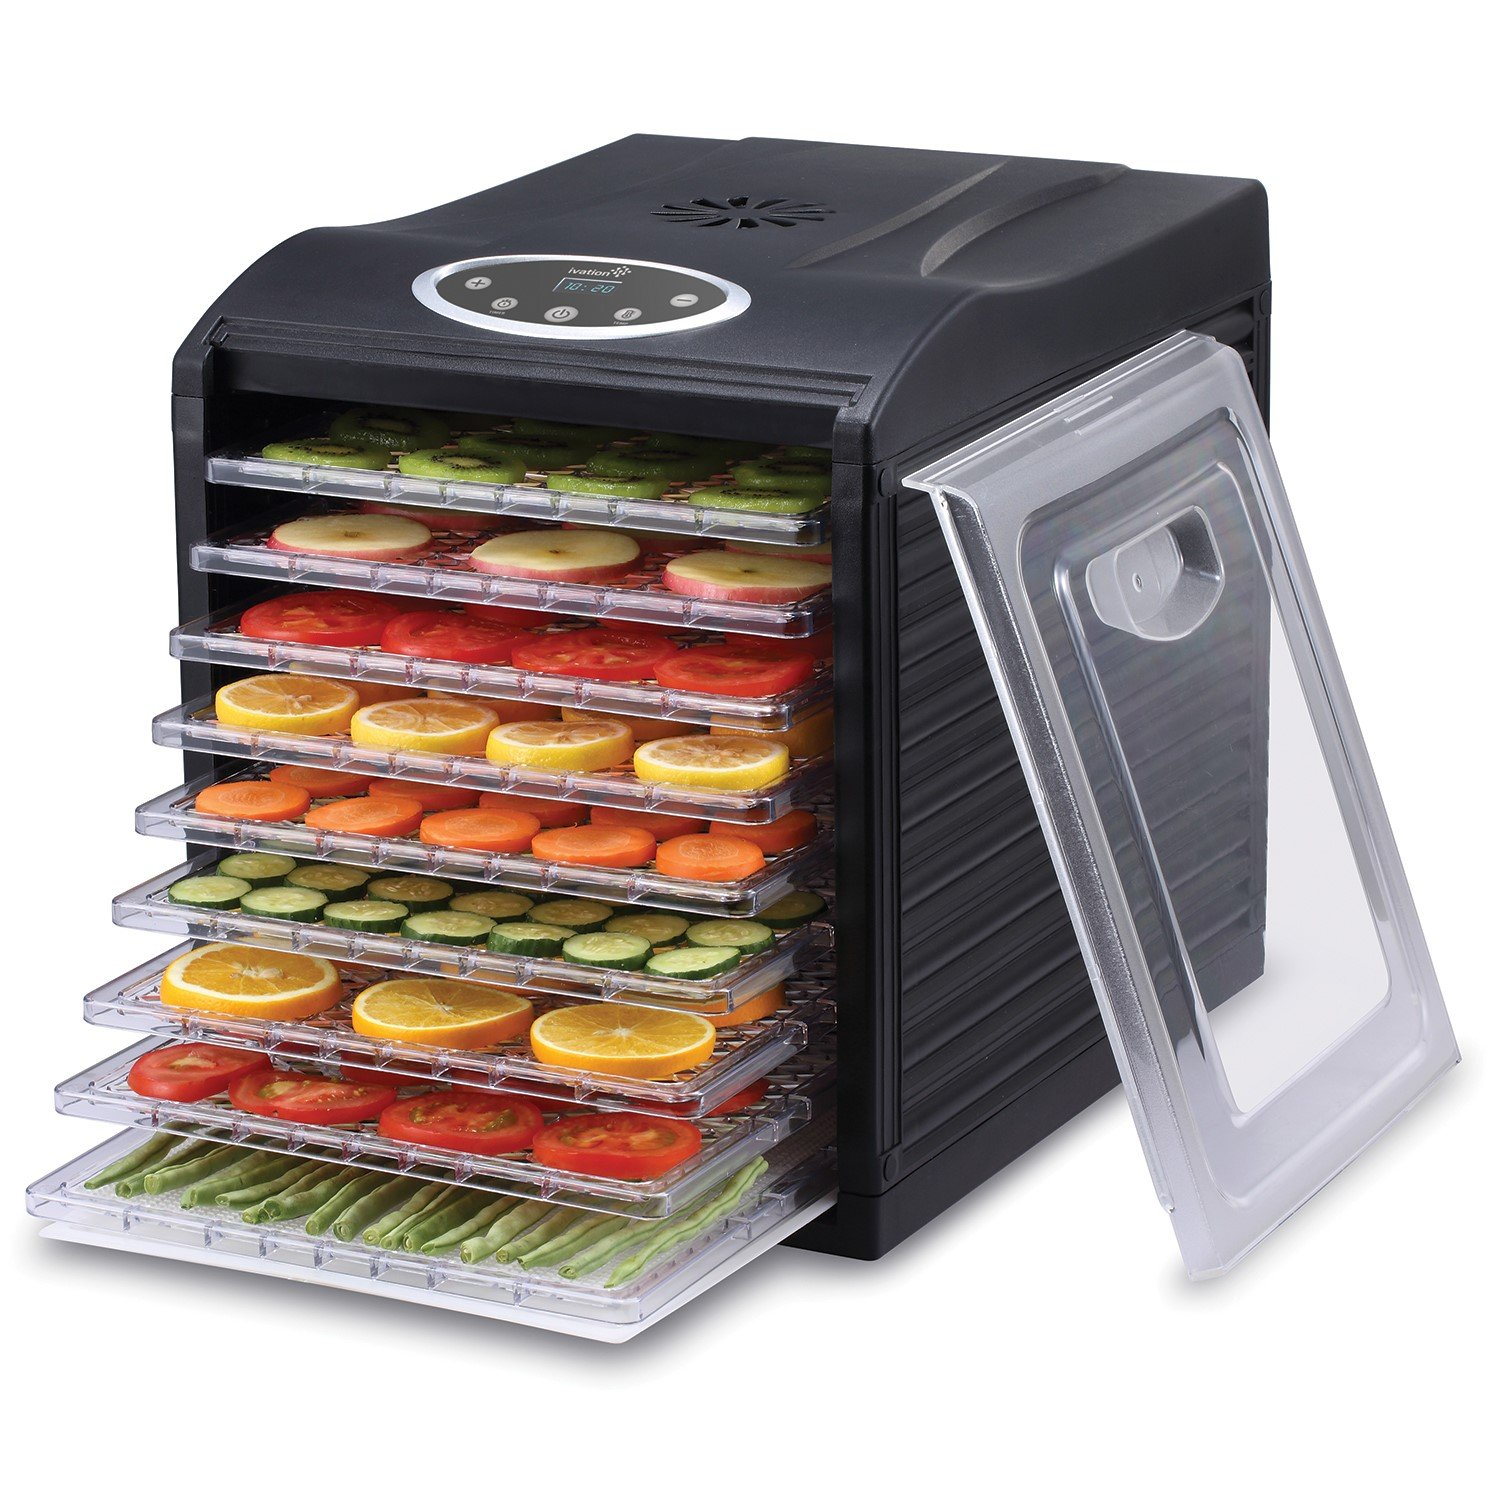 Ivation 600w Electric Food Dehydrator Pro with 9 Drying Trays, Digital Temperature Controls and Timer with Automatic Shutoff from 95ºF to 158ºF, for Beef Jerky, Dried Fruits, Vegetables & Nuts by Ivation